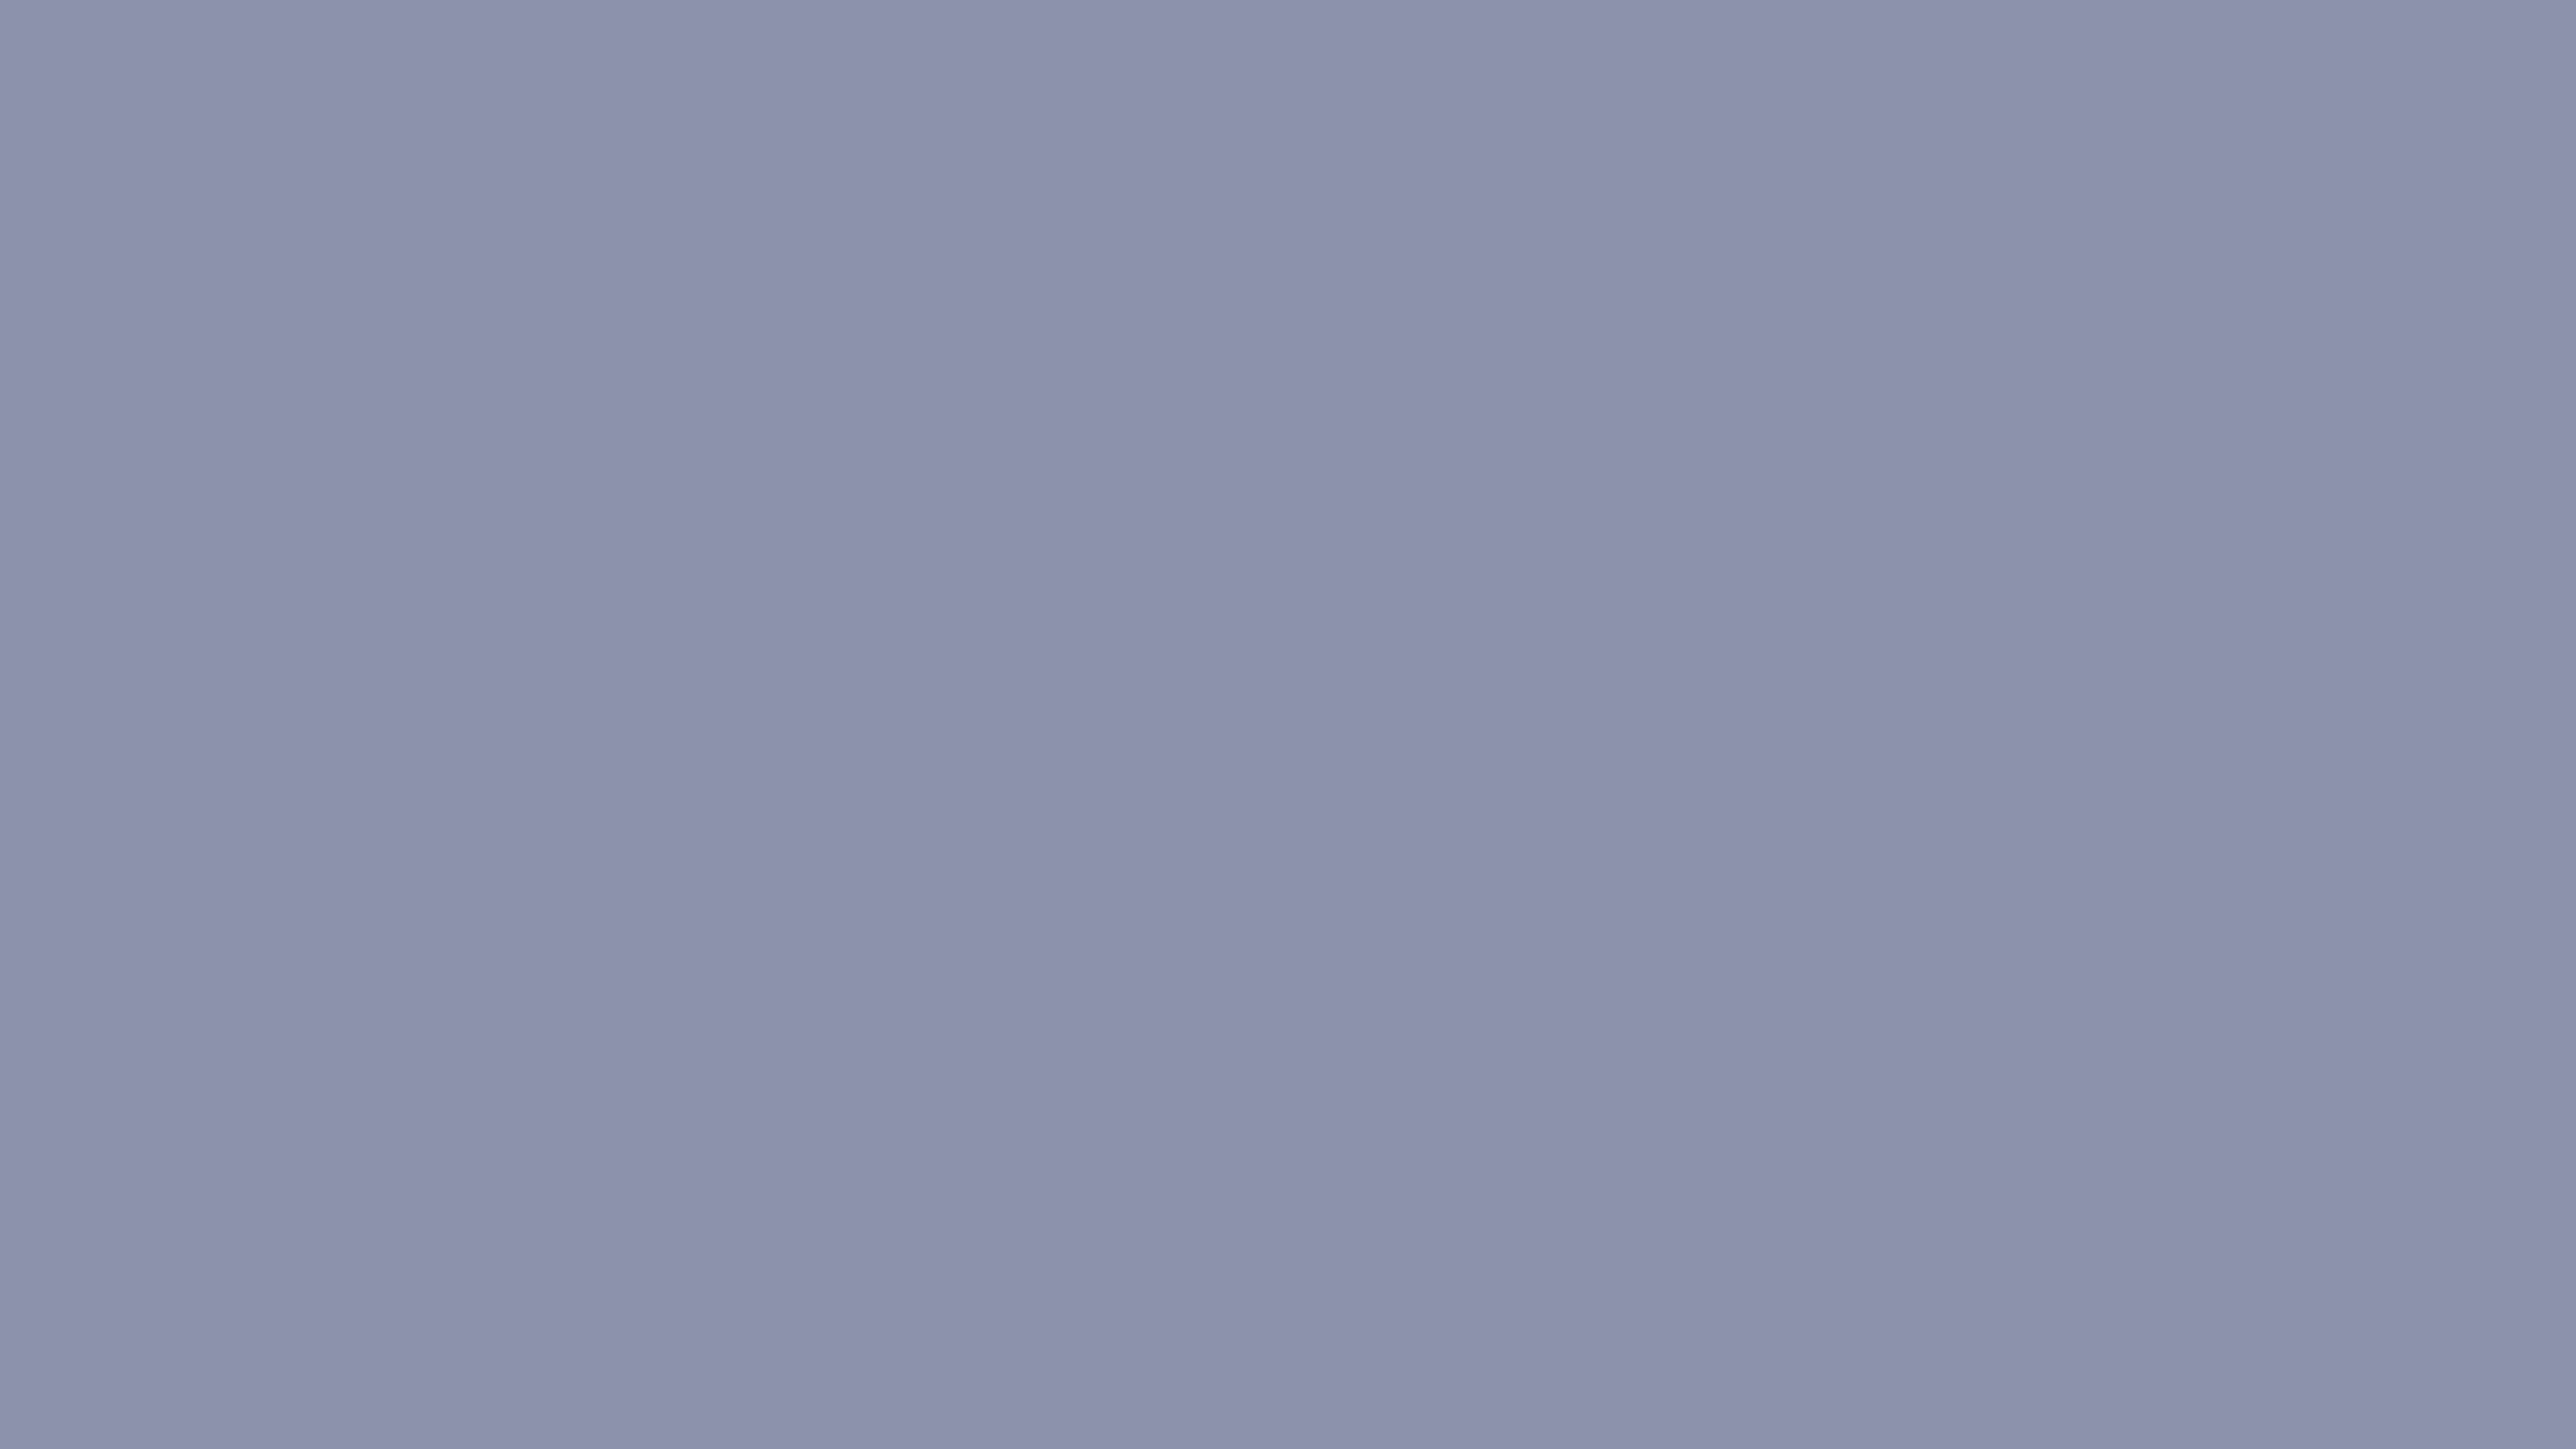 4096x2304 Gray-blue Solid Color Background